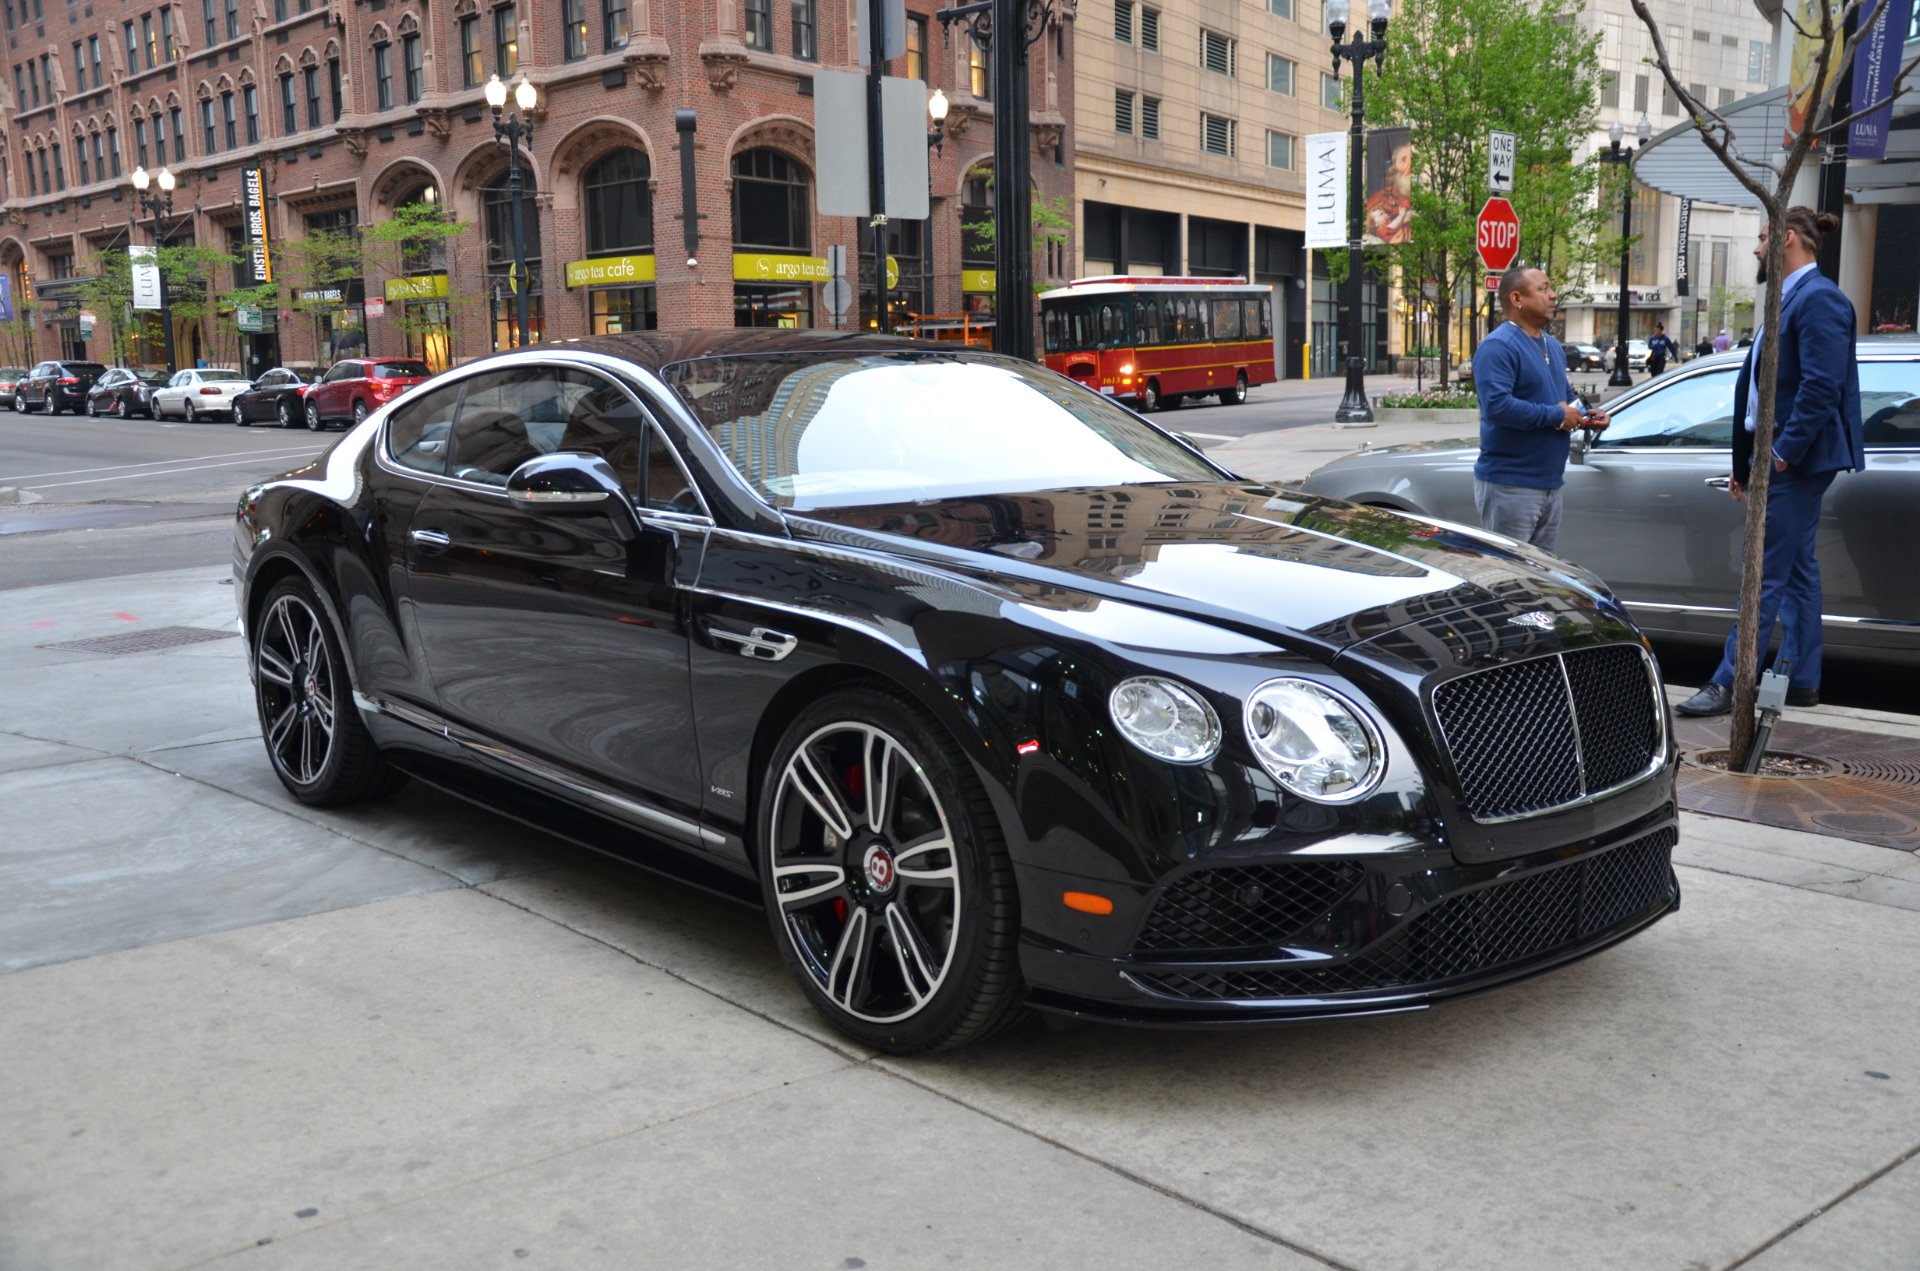 2016 bentley continental gt v8 s stock b784 s for sale near chicago il il bentley dealer. Black Bedroom Furniture Sets. Home Design Ideas